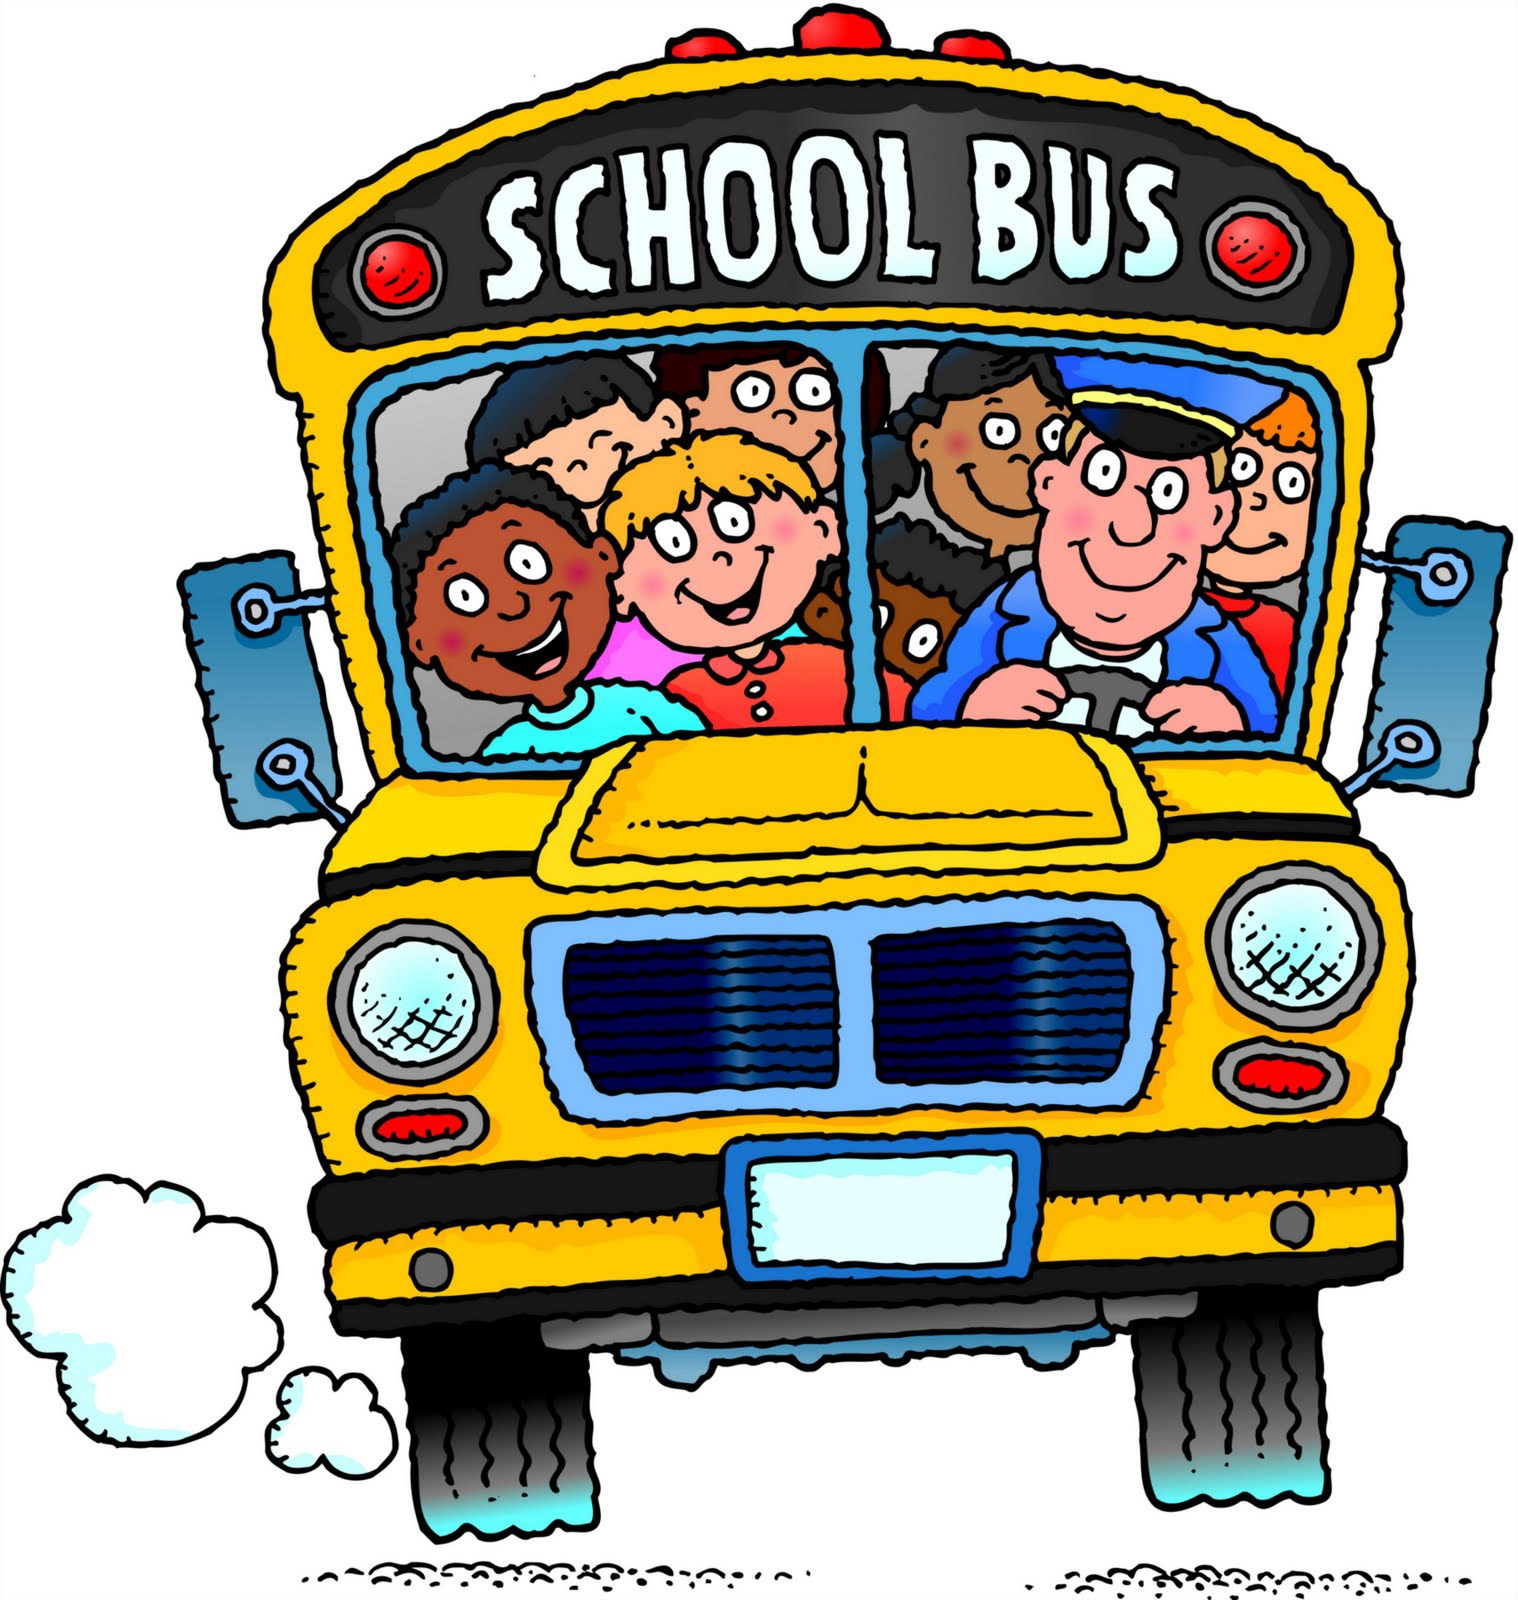 school bus clipart for kids at getdrawings com free for personal rh getdrawings com School Bus Clip Art Black and White Cartoon School Bus